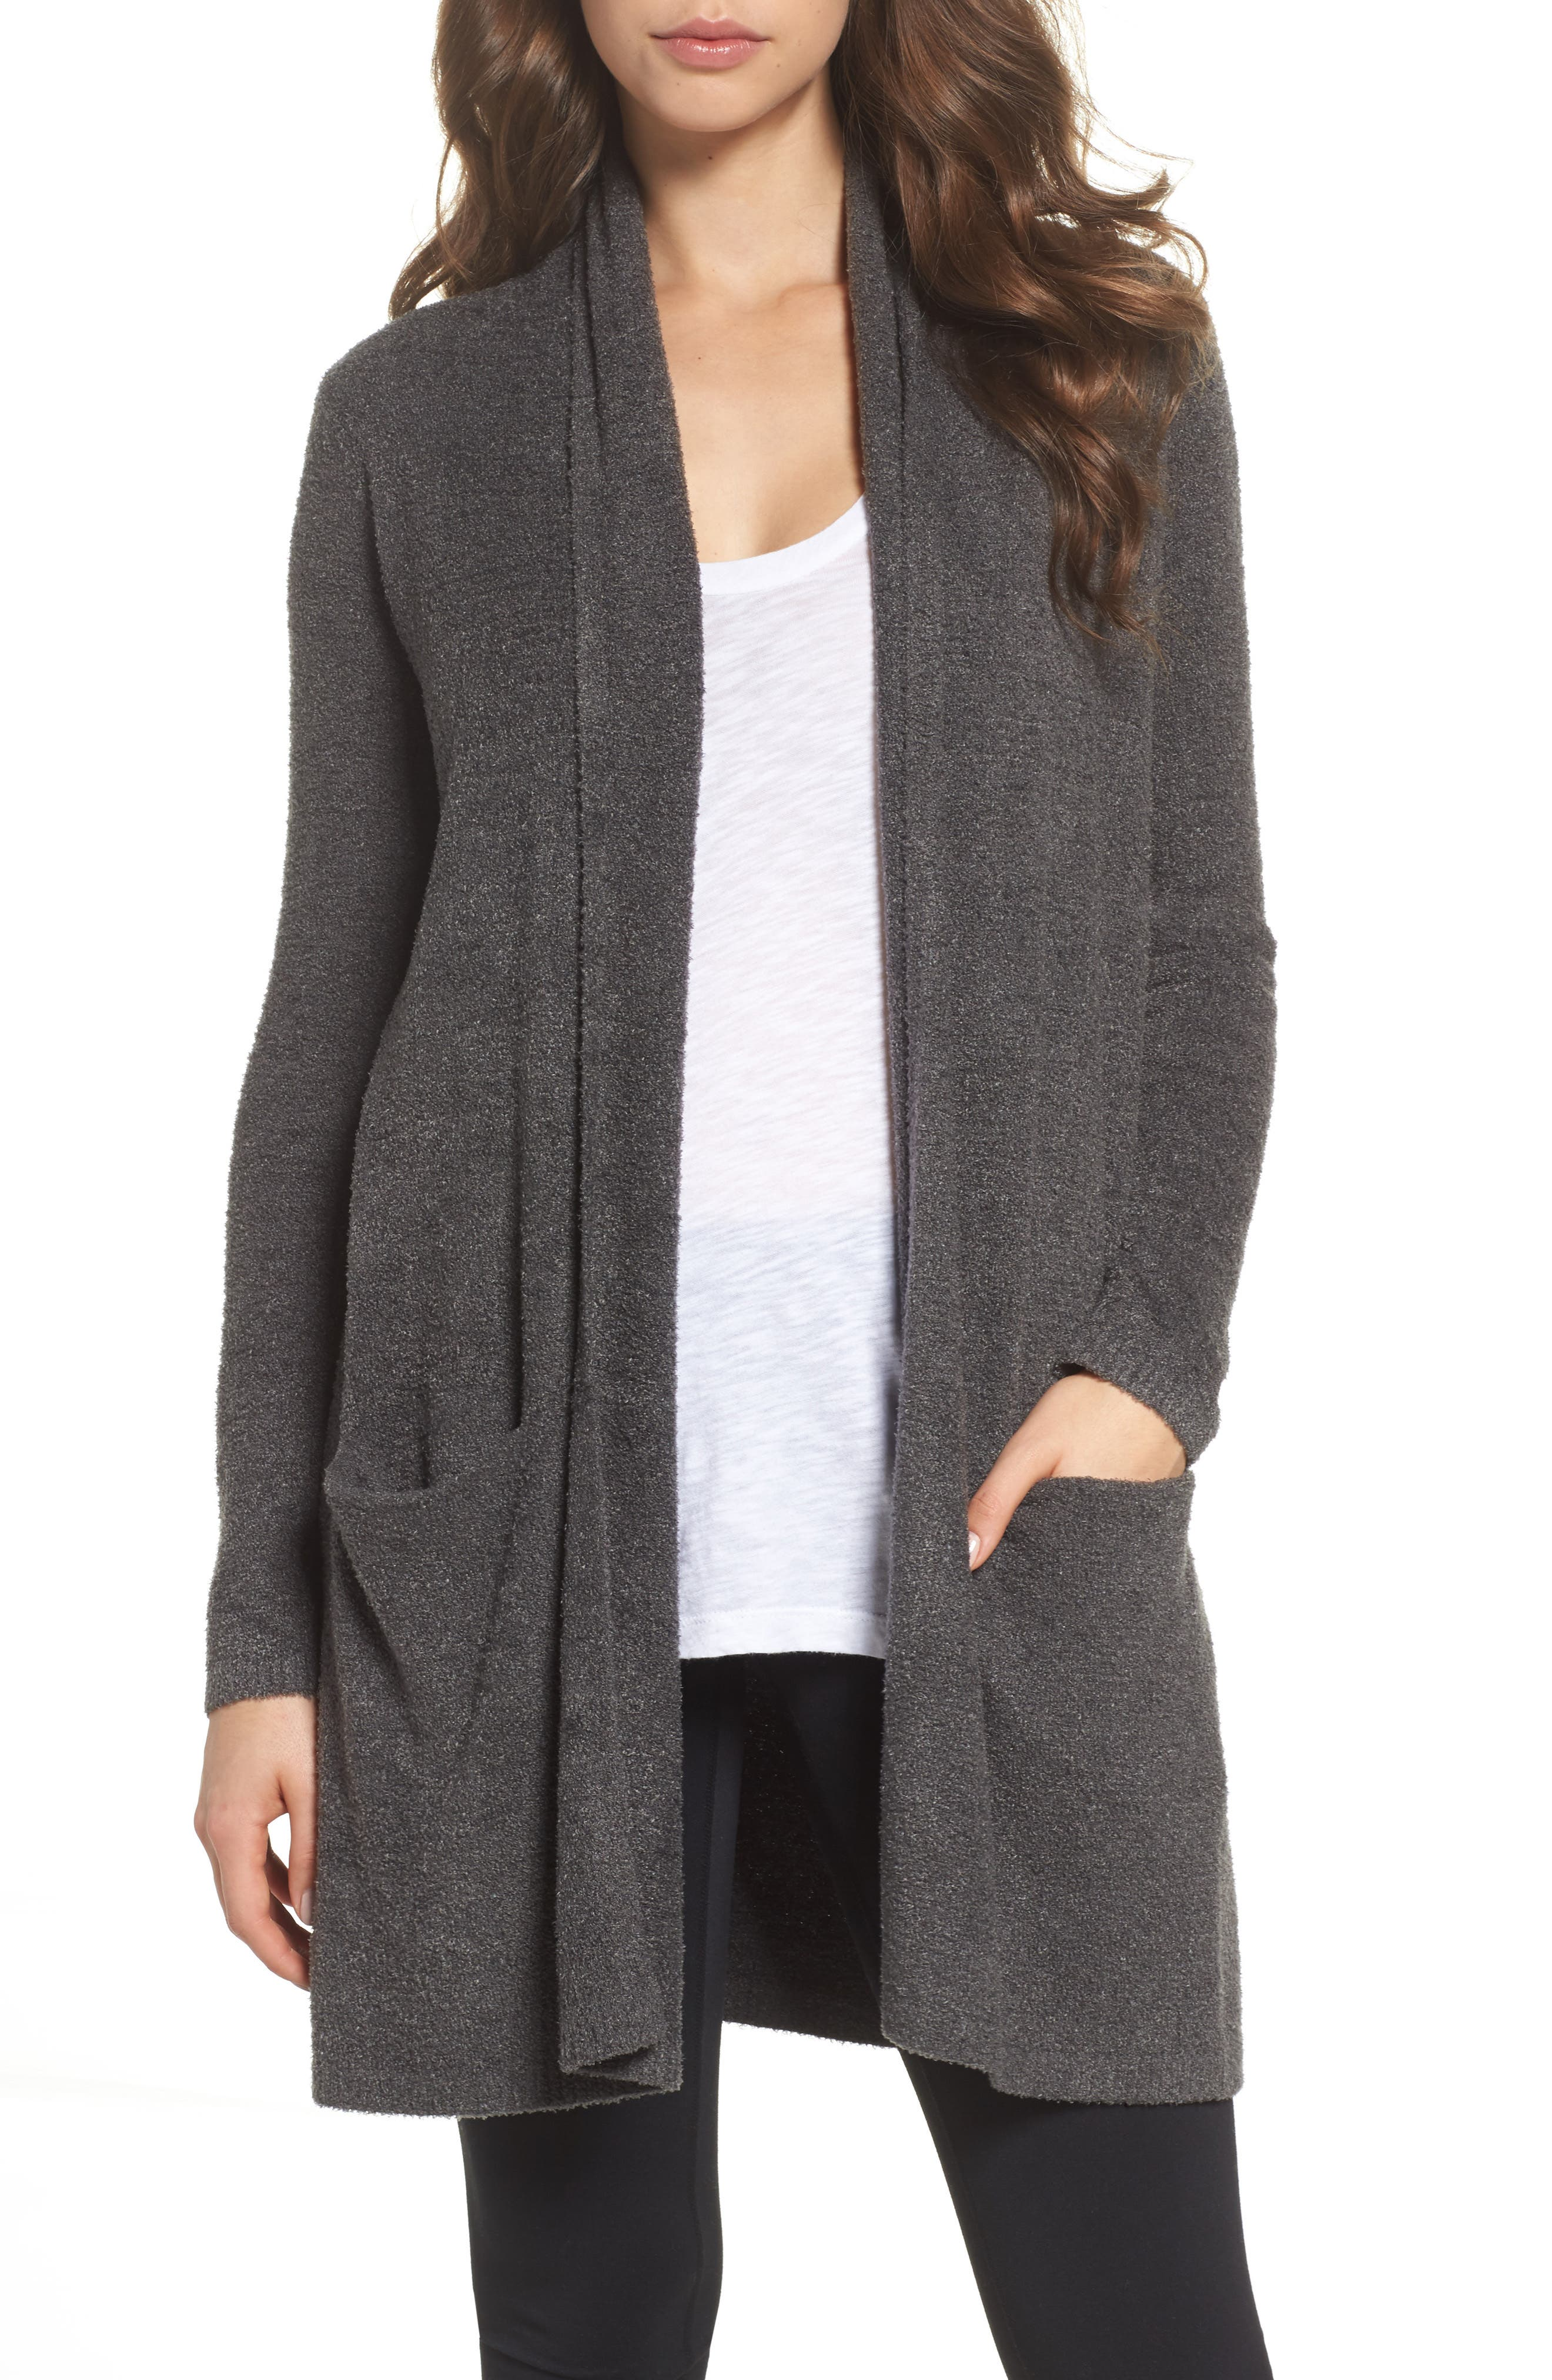 Barefoot Dreams Essential Cardigan,                             Main thumbnail 1, color,                             Carbon